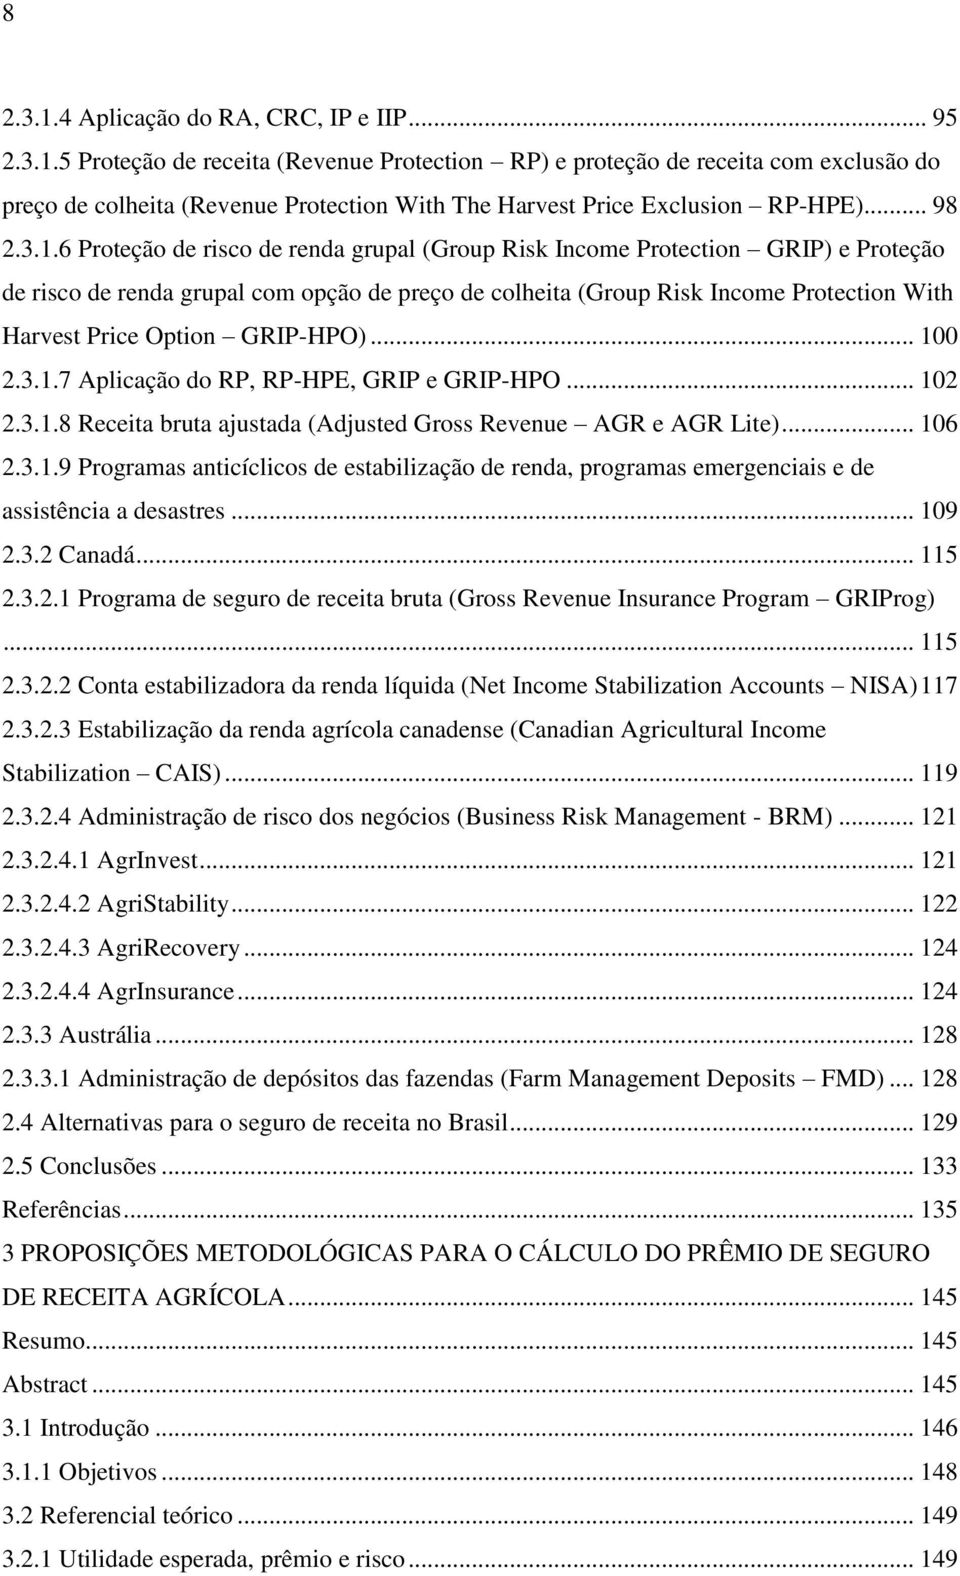 6 Proteção de risco de renda grupal (Group Risk Income Protection GRIP) e Proteção de risco de renda grupal com opção de preço de colheita (Group Risk Income Protection With Harvest Price Option